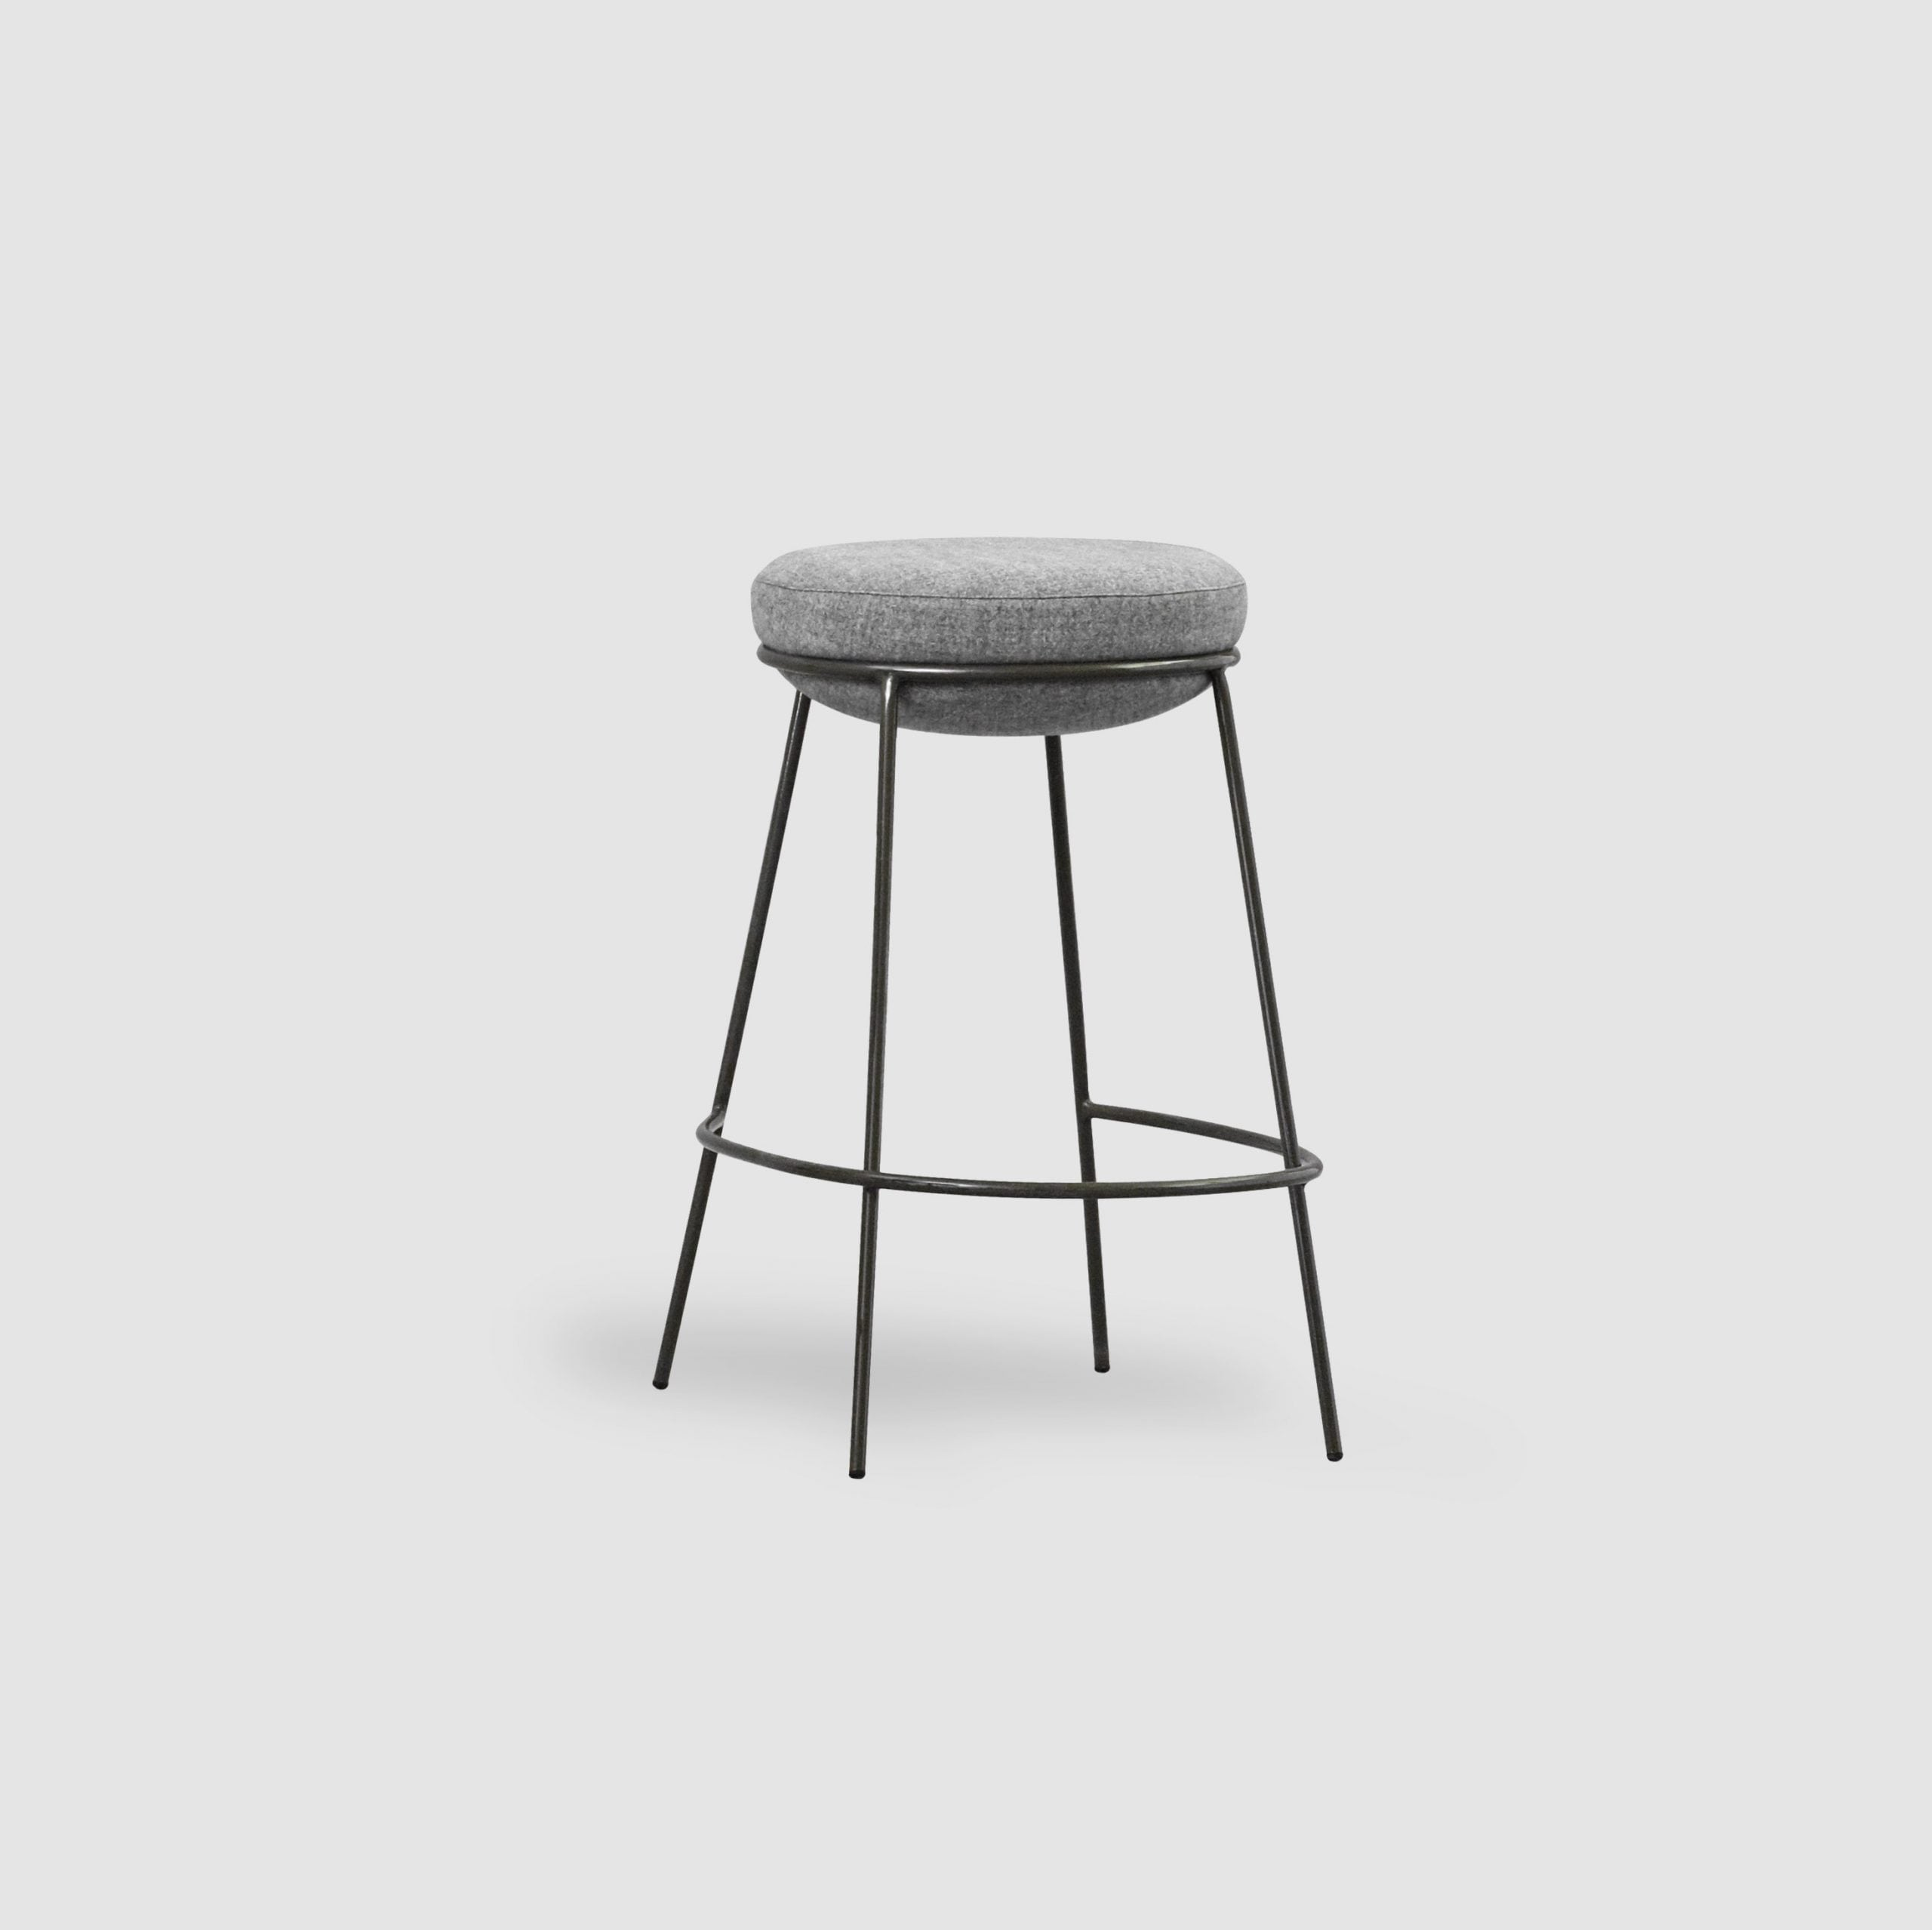 nest-barstool-2-hospitality-interior-projects-furniture-contract